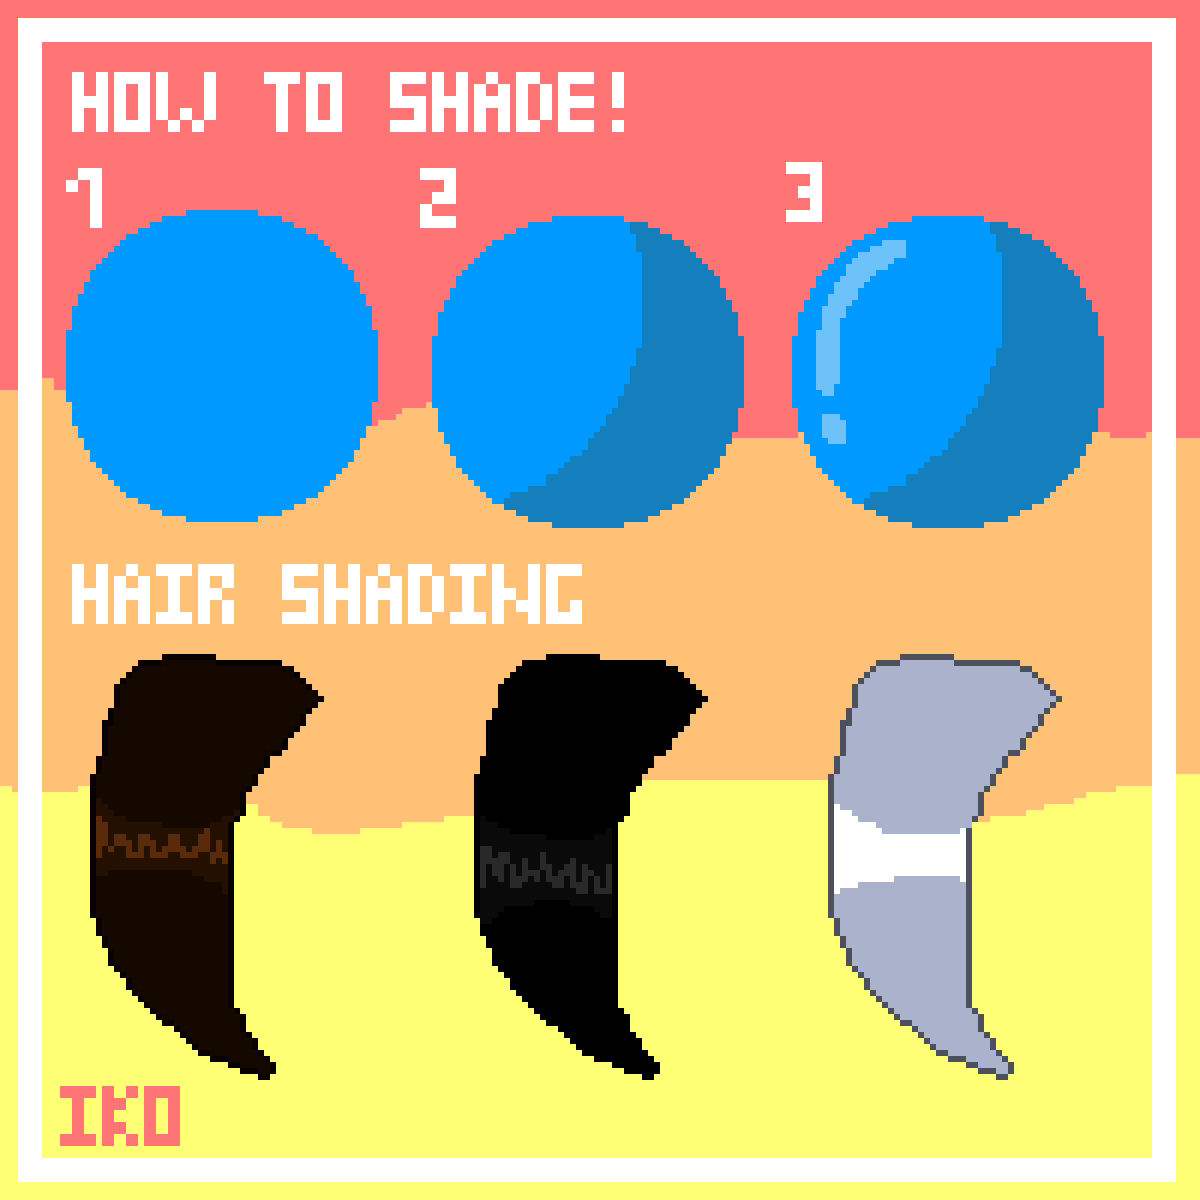 How To Shade! by IKO-PIXEL-ART